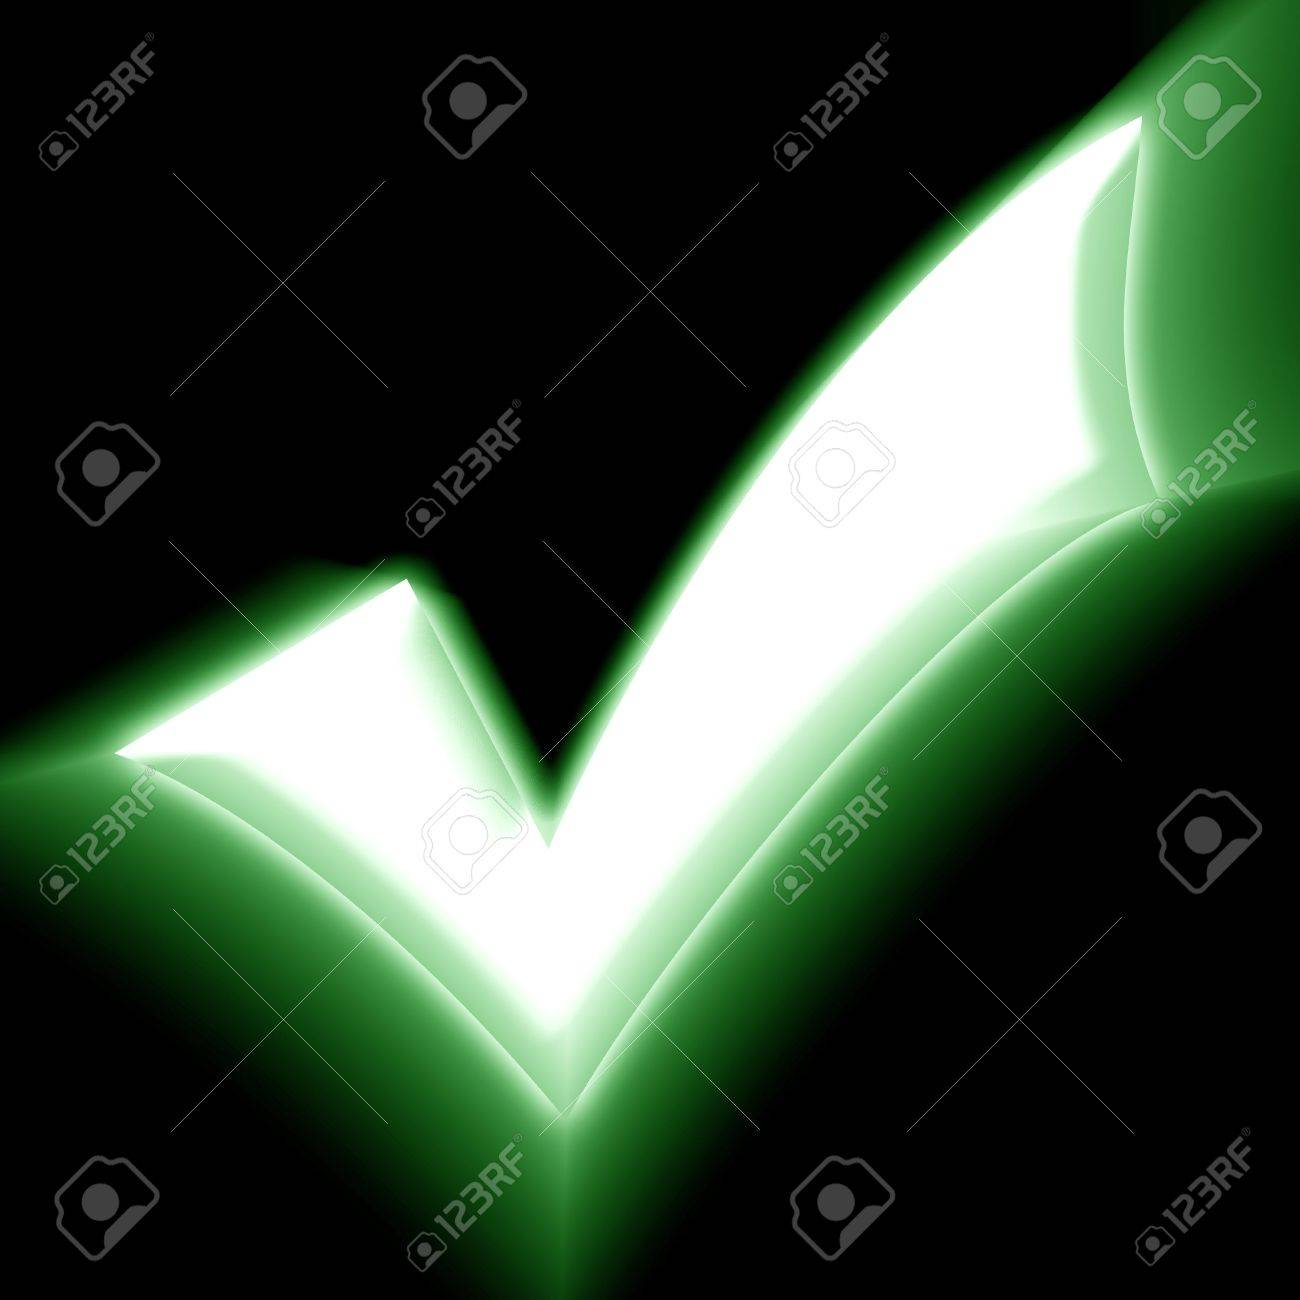 green approved tick on a black background Stock Photo - 3861134